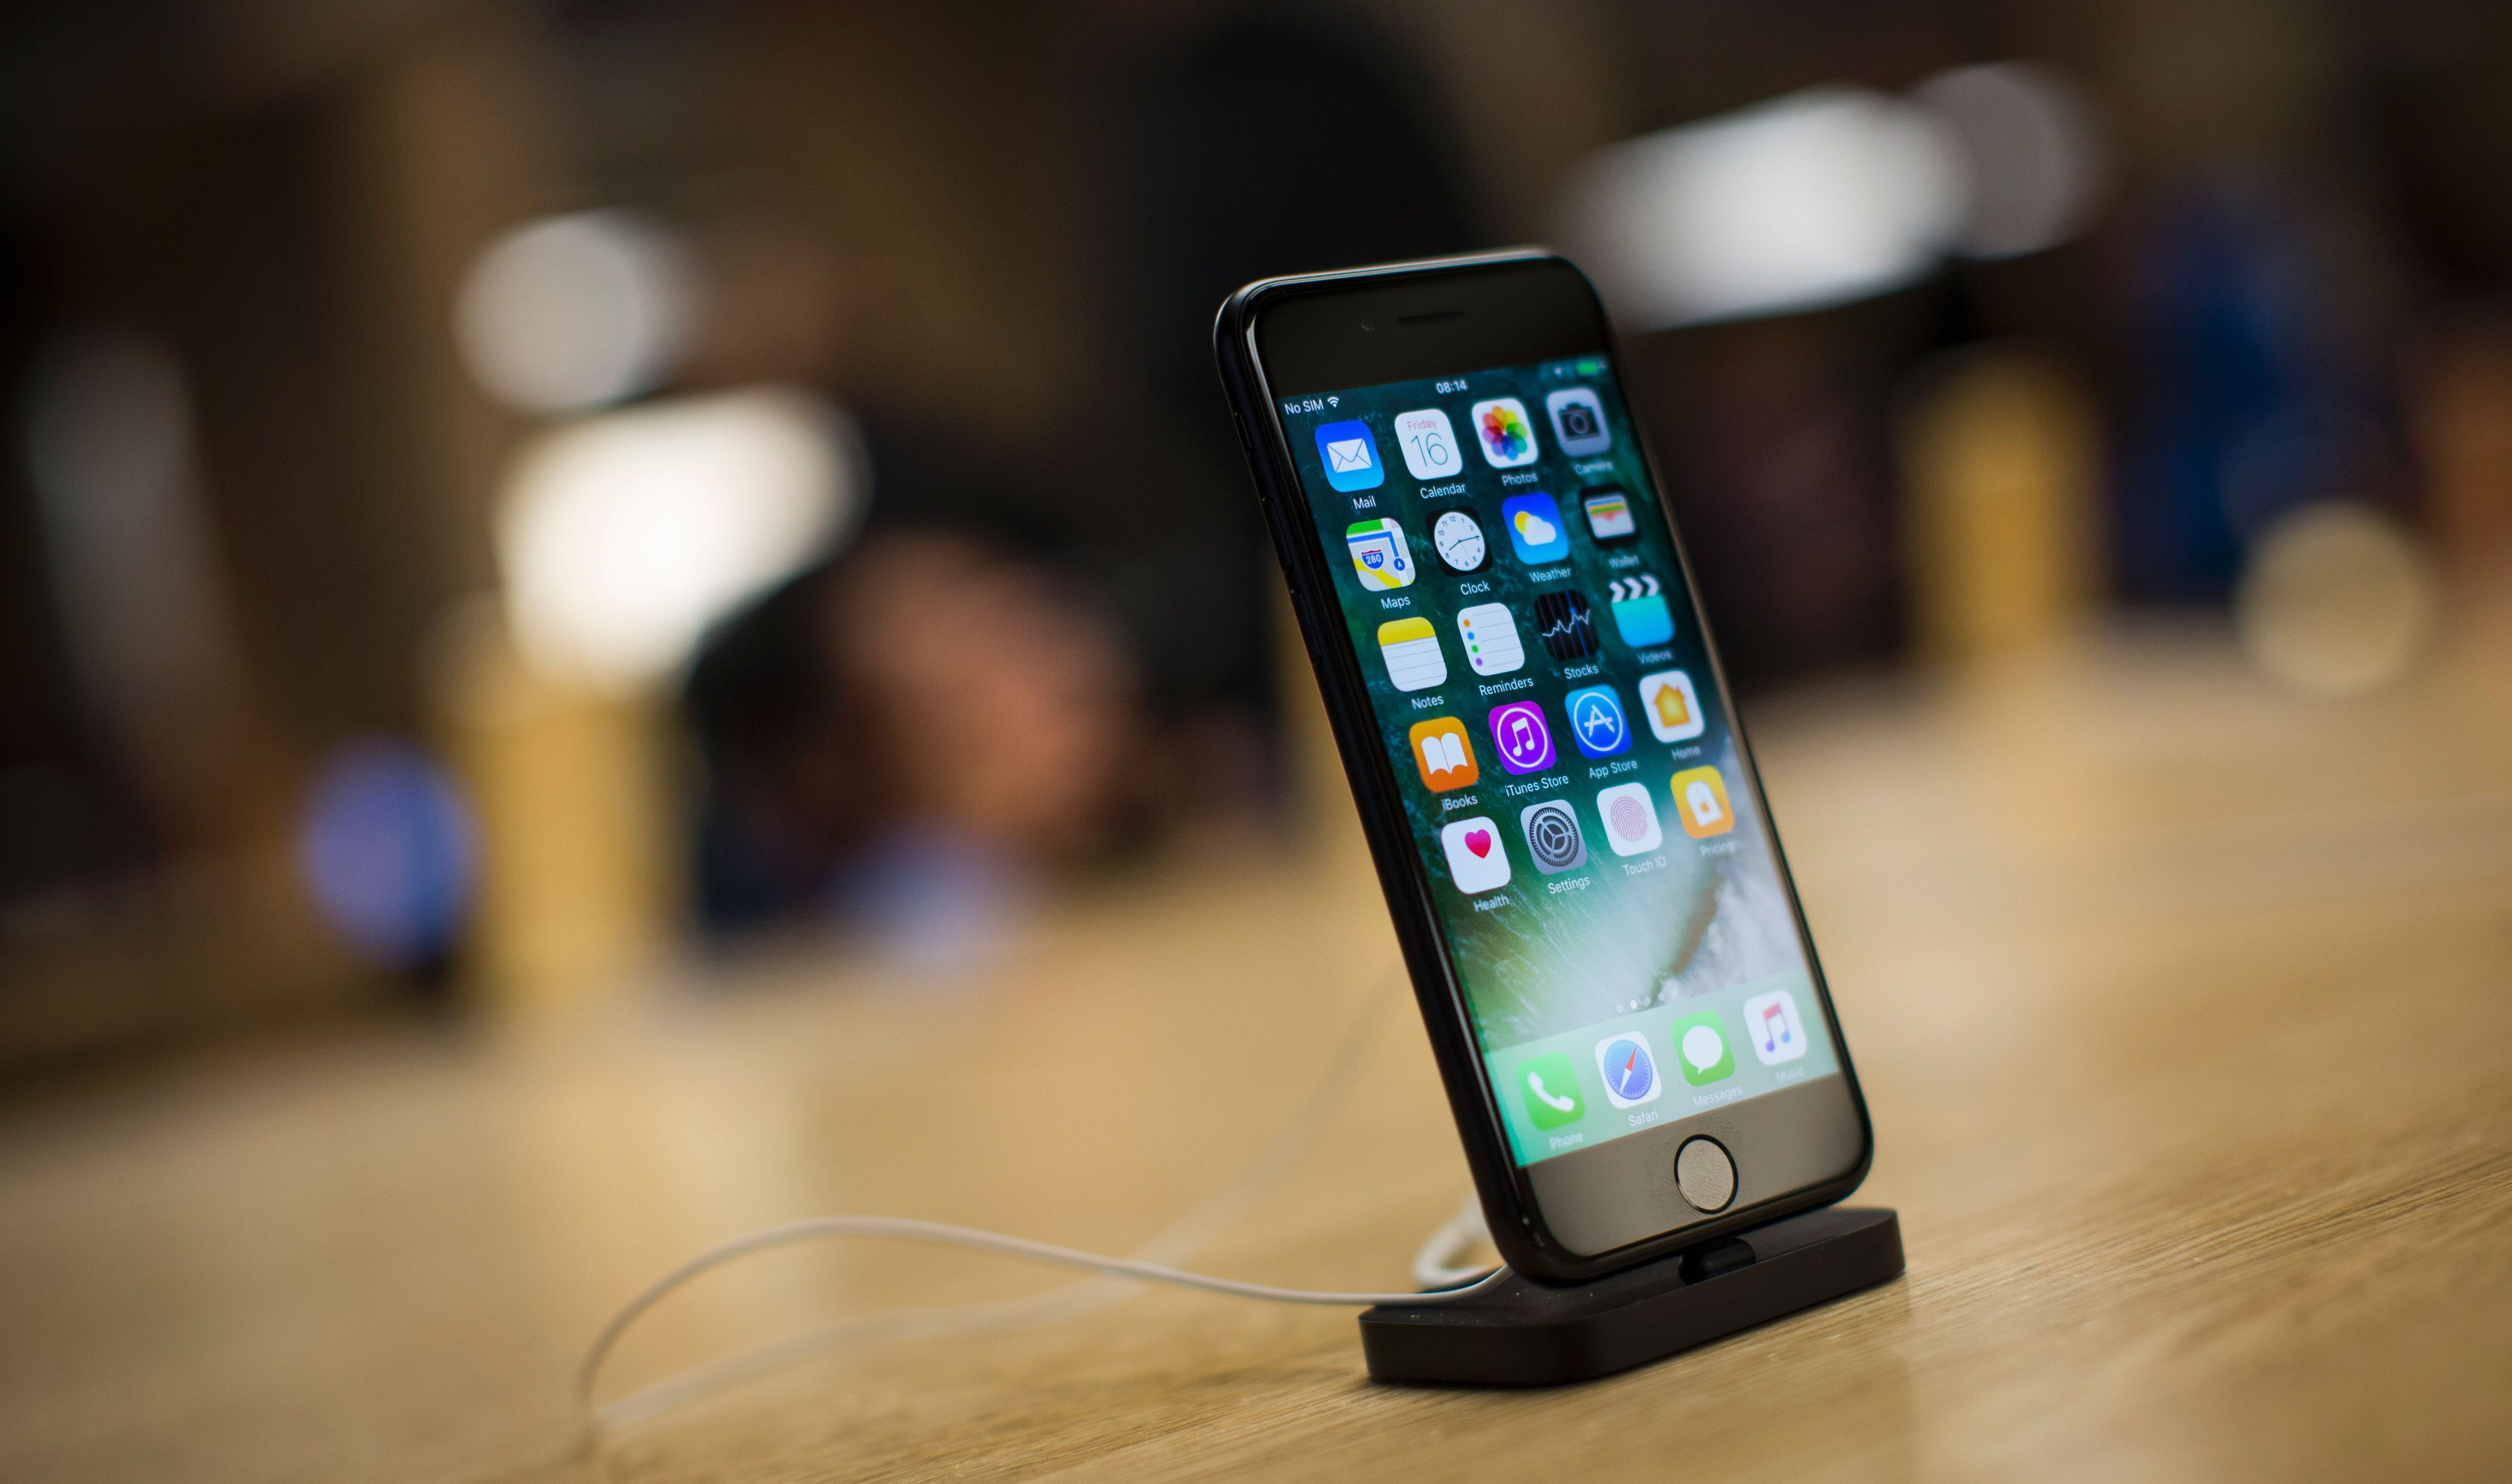 An iPhone 7 smartphone is on display in London on Sept. 16, 2016.